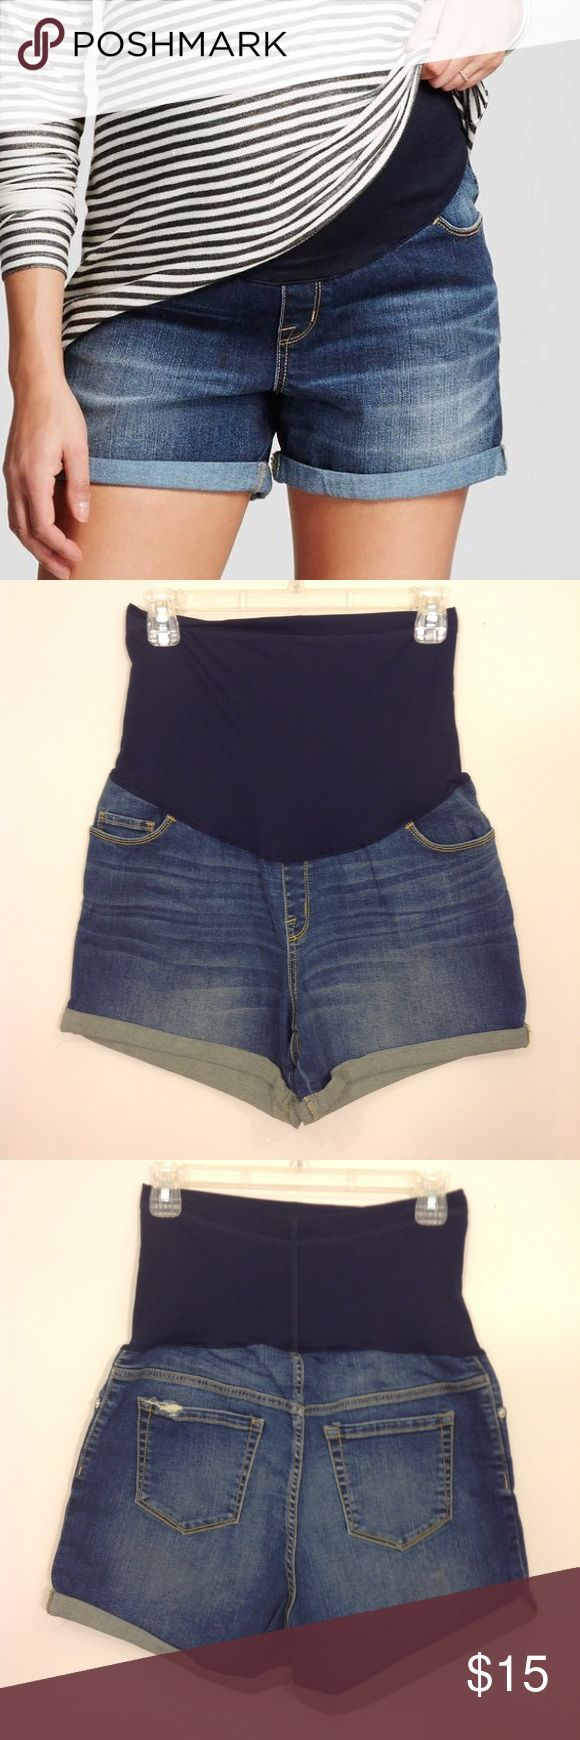 "NWOT Maternity Jean Shorts Over Belly Midi Sz S New without tags. This was a Target manufacturer sample.       Midi jean shorts with over-the-belly stretch waist band  Tag Size:  S  Fabric:  95% cotton, 2% spandex, 3% other Inseam:   4""         Pregnant, pregnancy, expecting, Liz Lange, denim  . Liz Lange for Target Shorts Jean Shorts"